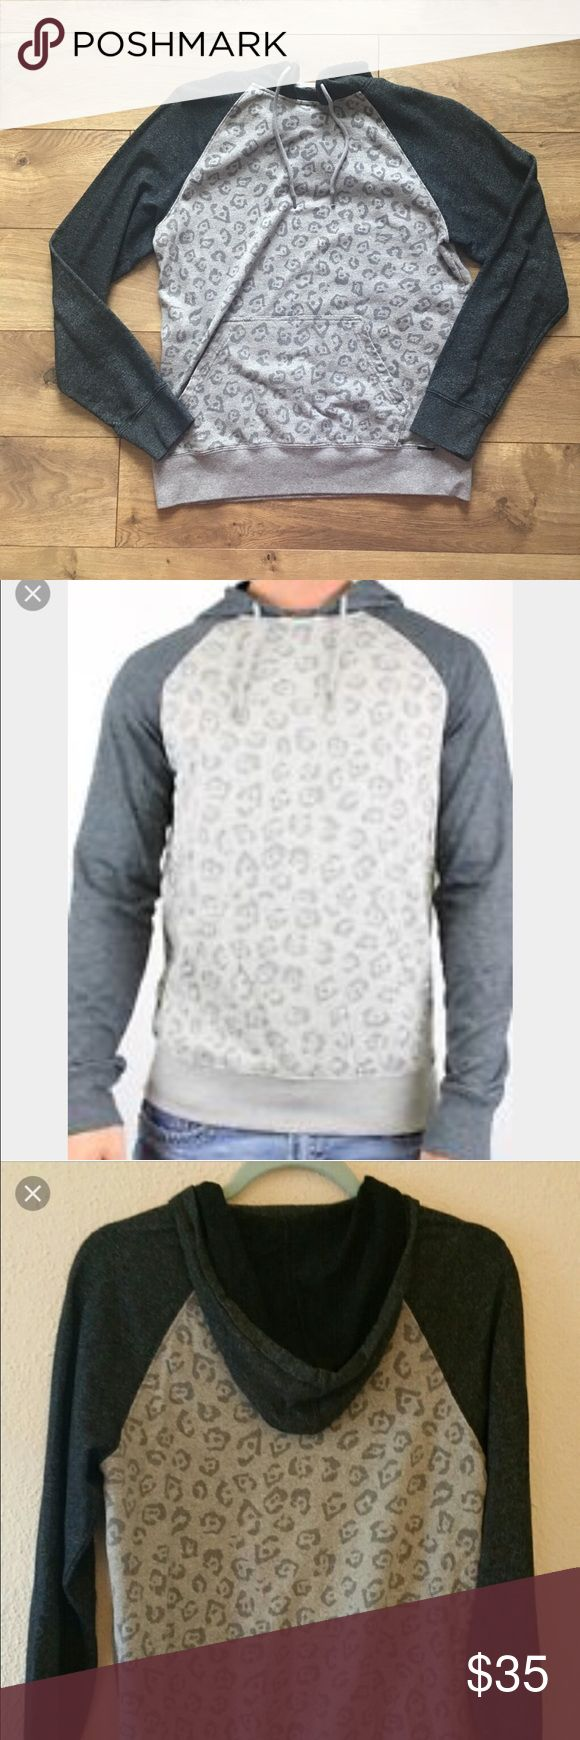 On The Byas Cheetah Print Hoodie 🖤 On The Byas Cheetah Print Hoodie, super cute with leggings. it's a guy's medium but fits like a girls medium / large also. from pac sun. in good condition. 🖤 on the byas Shirts Sweatshirts & Hoodies